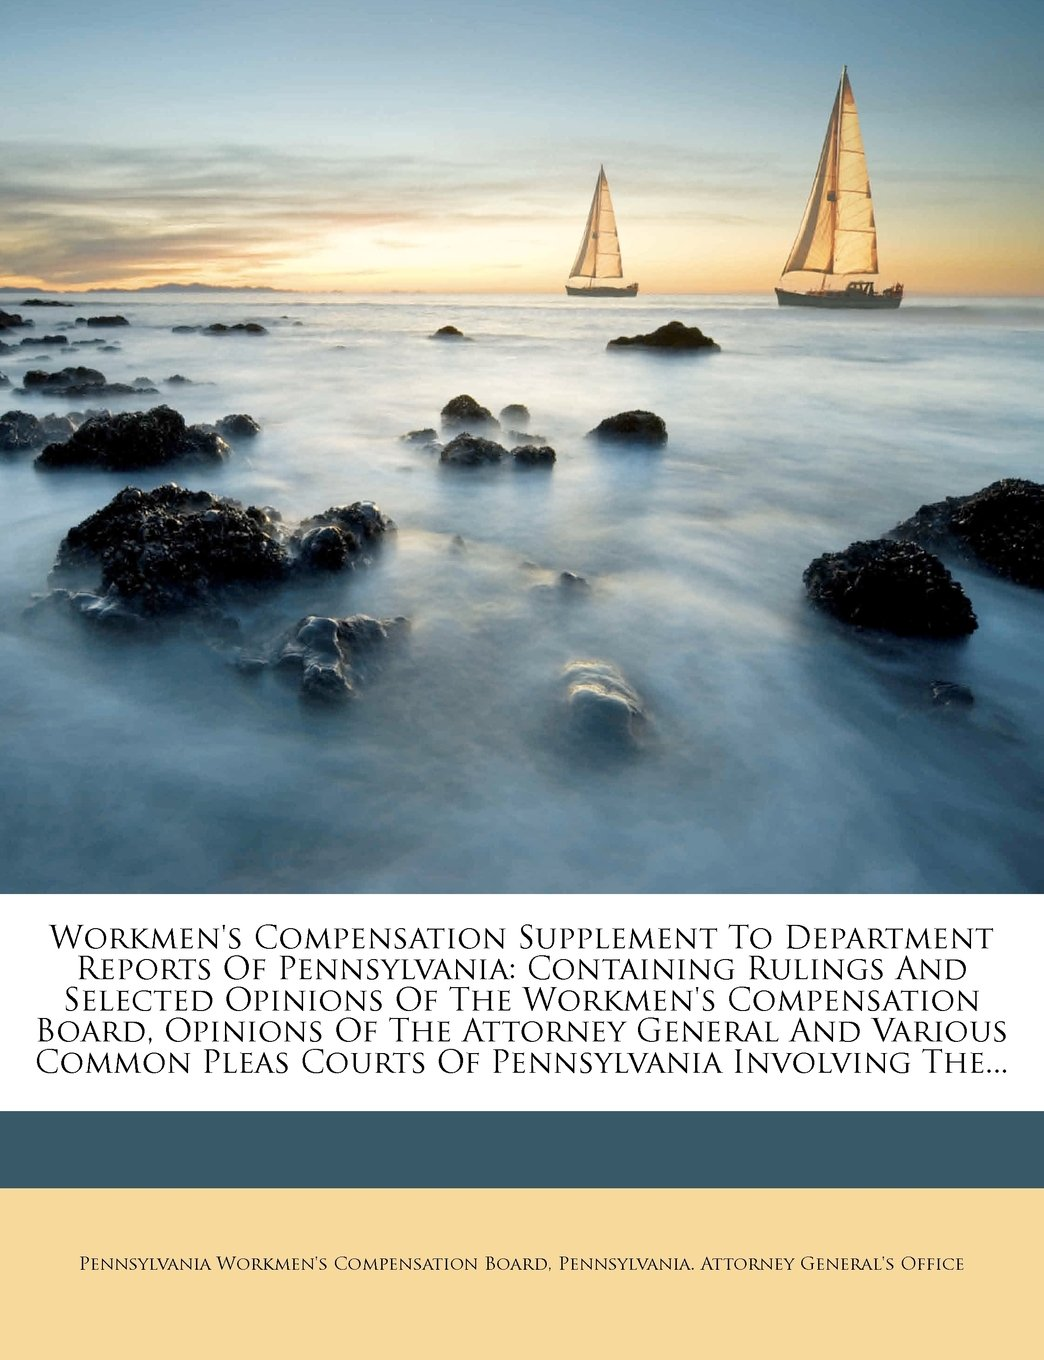 Read Online Workmen's Compensation Supplement To Department Reports Of Pennsylvania: Containing Rulings And Selected Opinions Of The Workmen's Compensation Board, ... Pleas Courts Of Pennsylvania Involving The... PDF